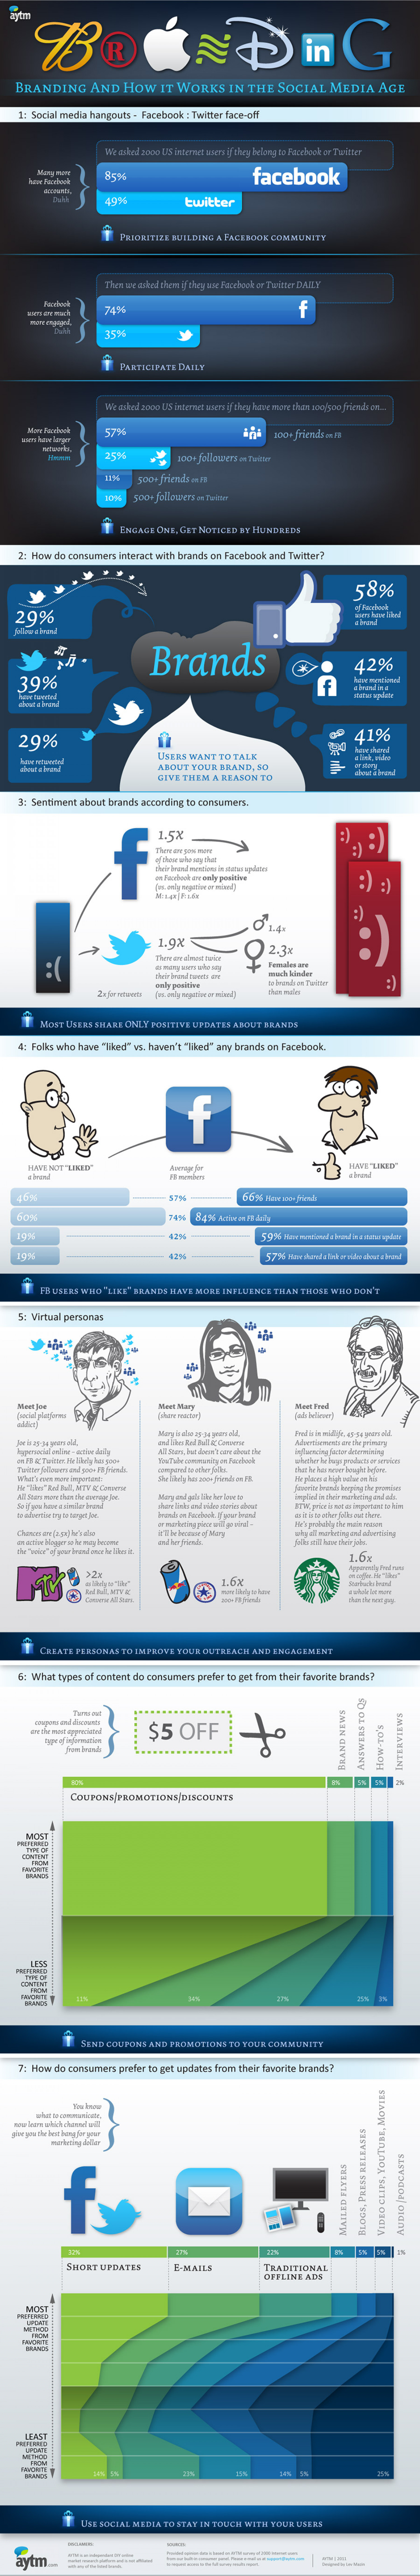 Branding And How It Works in the Social Media Age Infographic